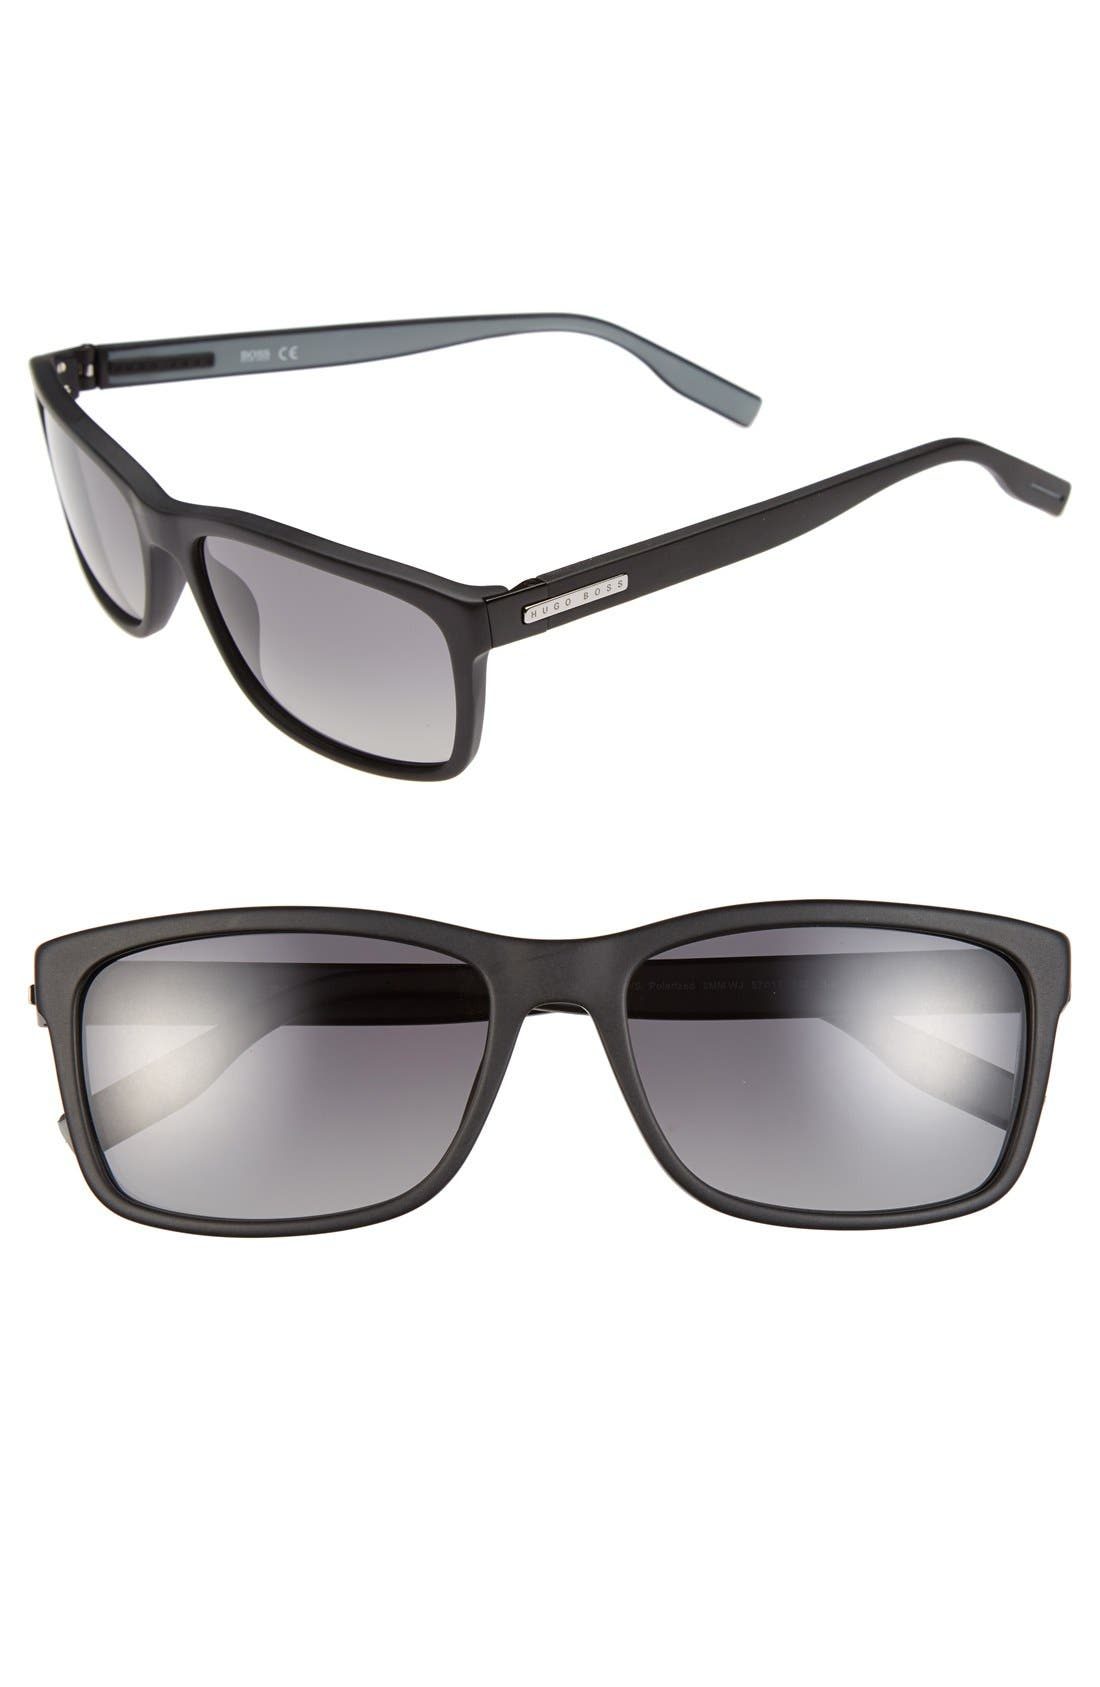 Alternate Image 1 Selected - BOSS 57mm Polarized Retro Sunglasses